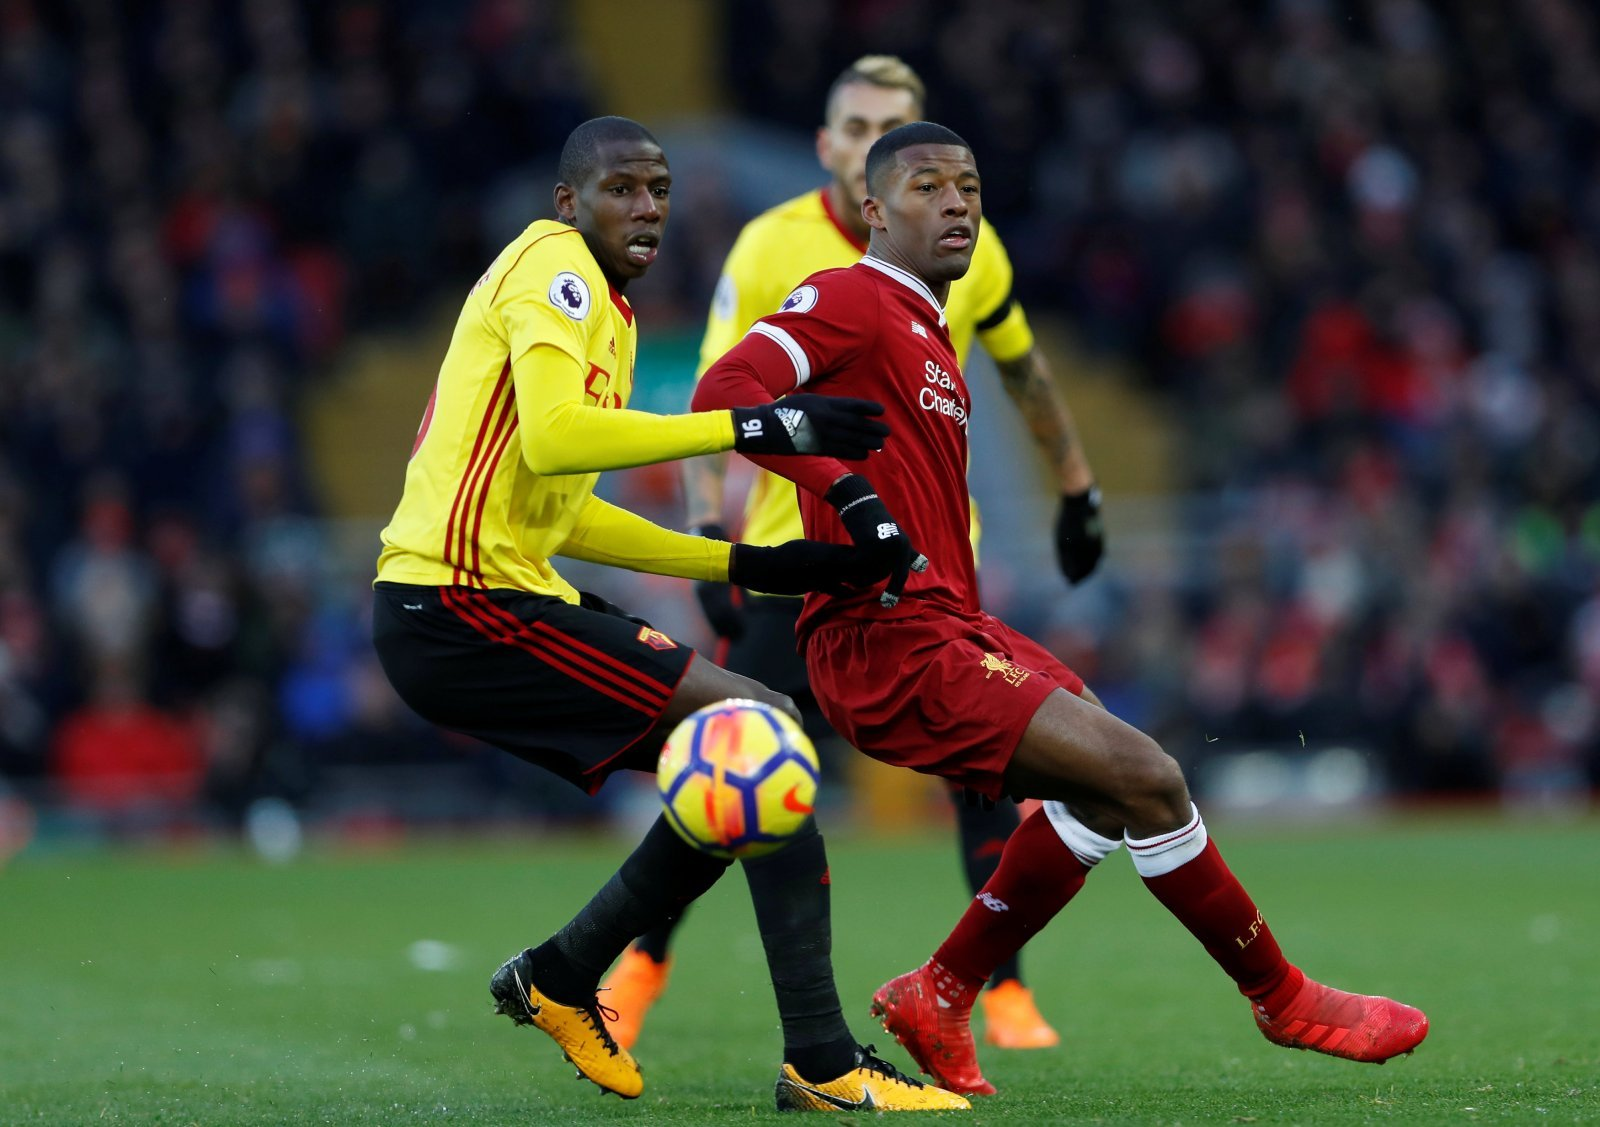 Forget Richarlison: Marco Silva should instead reunite with Abdoulaye Doucoure at Everton